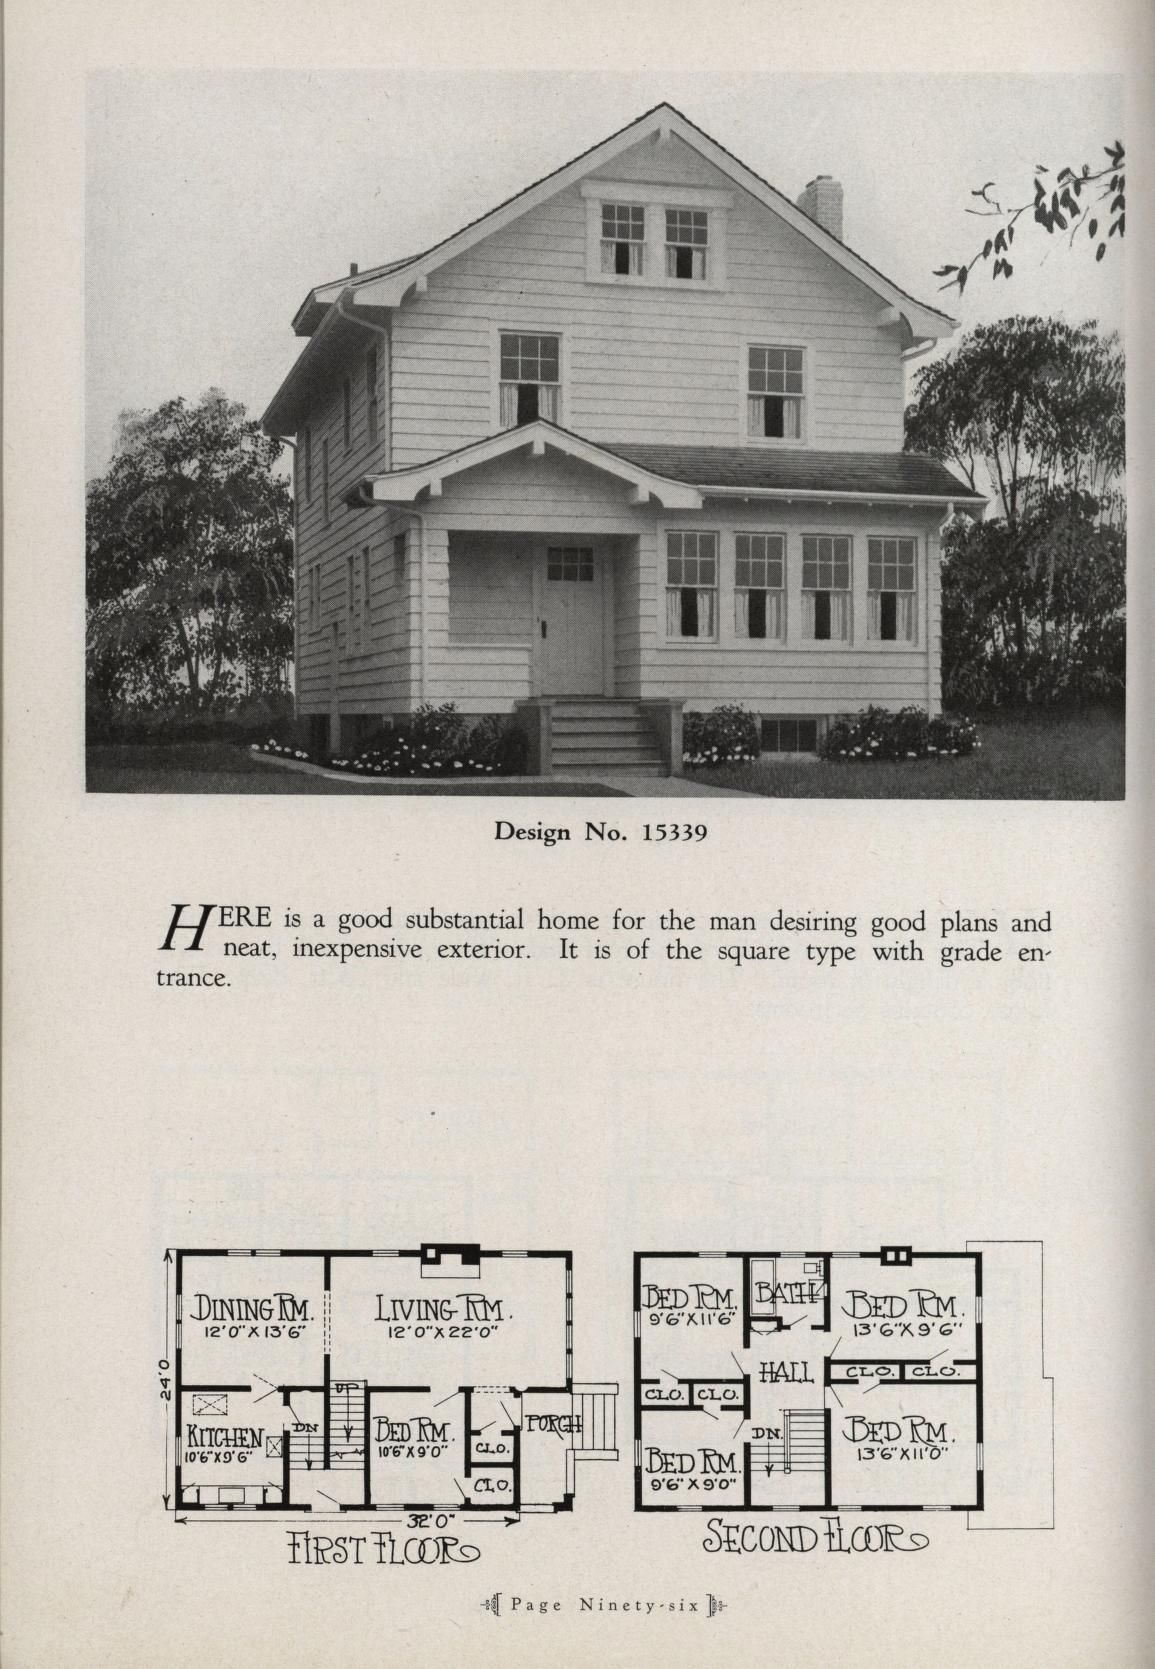 Artistic Homes Build A Home First In 2019 Vintage House Plans Building A House House Floor Plans